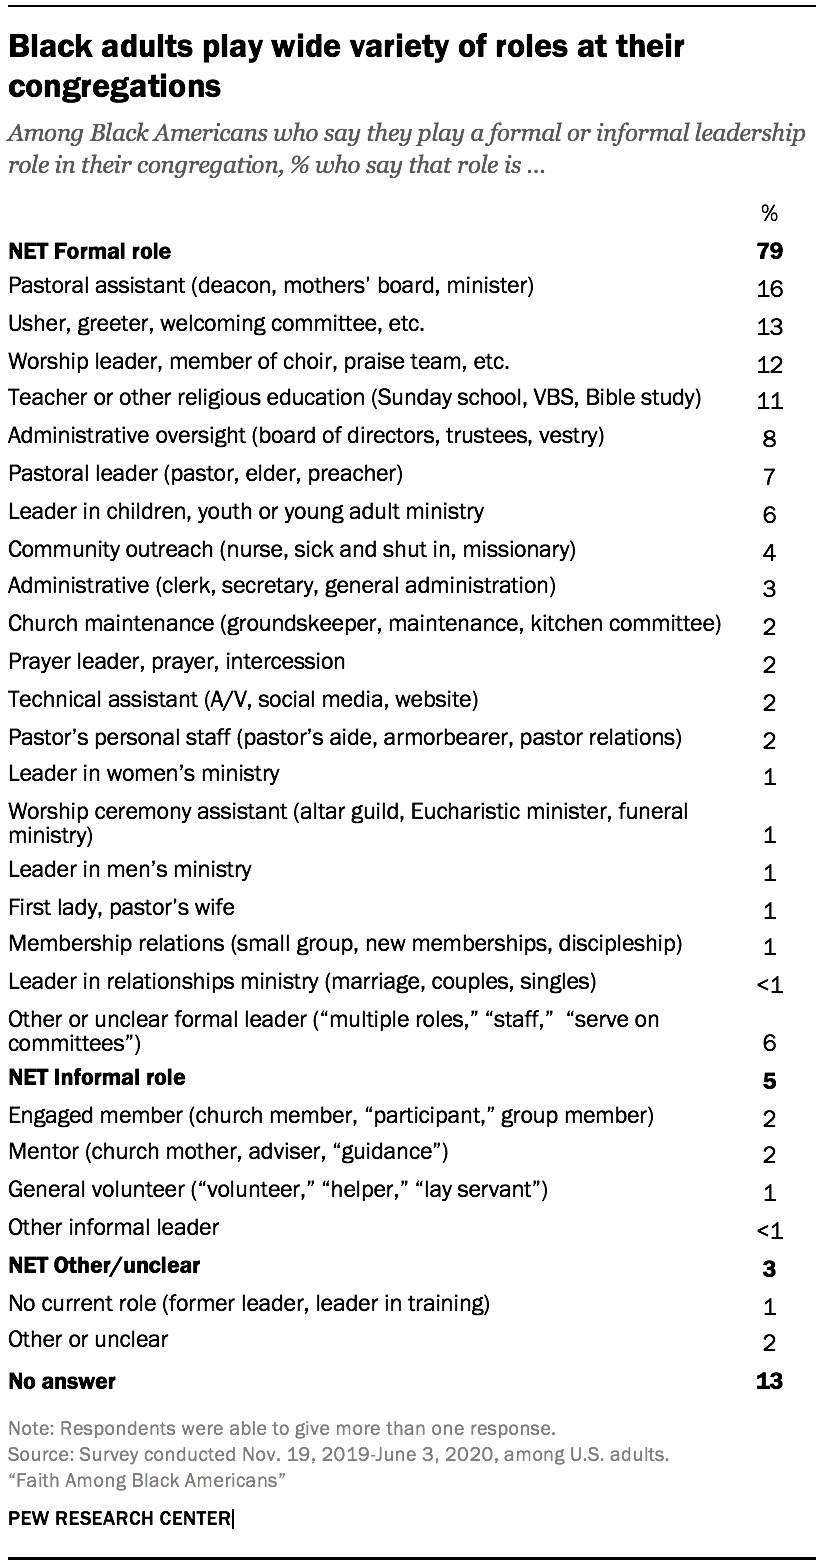 Black adults play wide variety of roles at their congregations